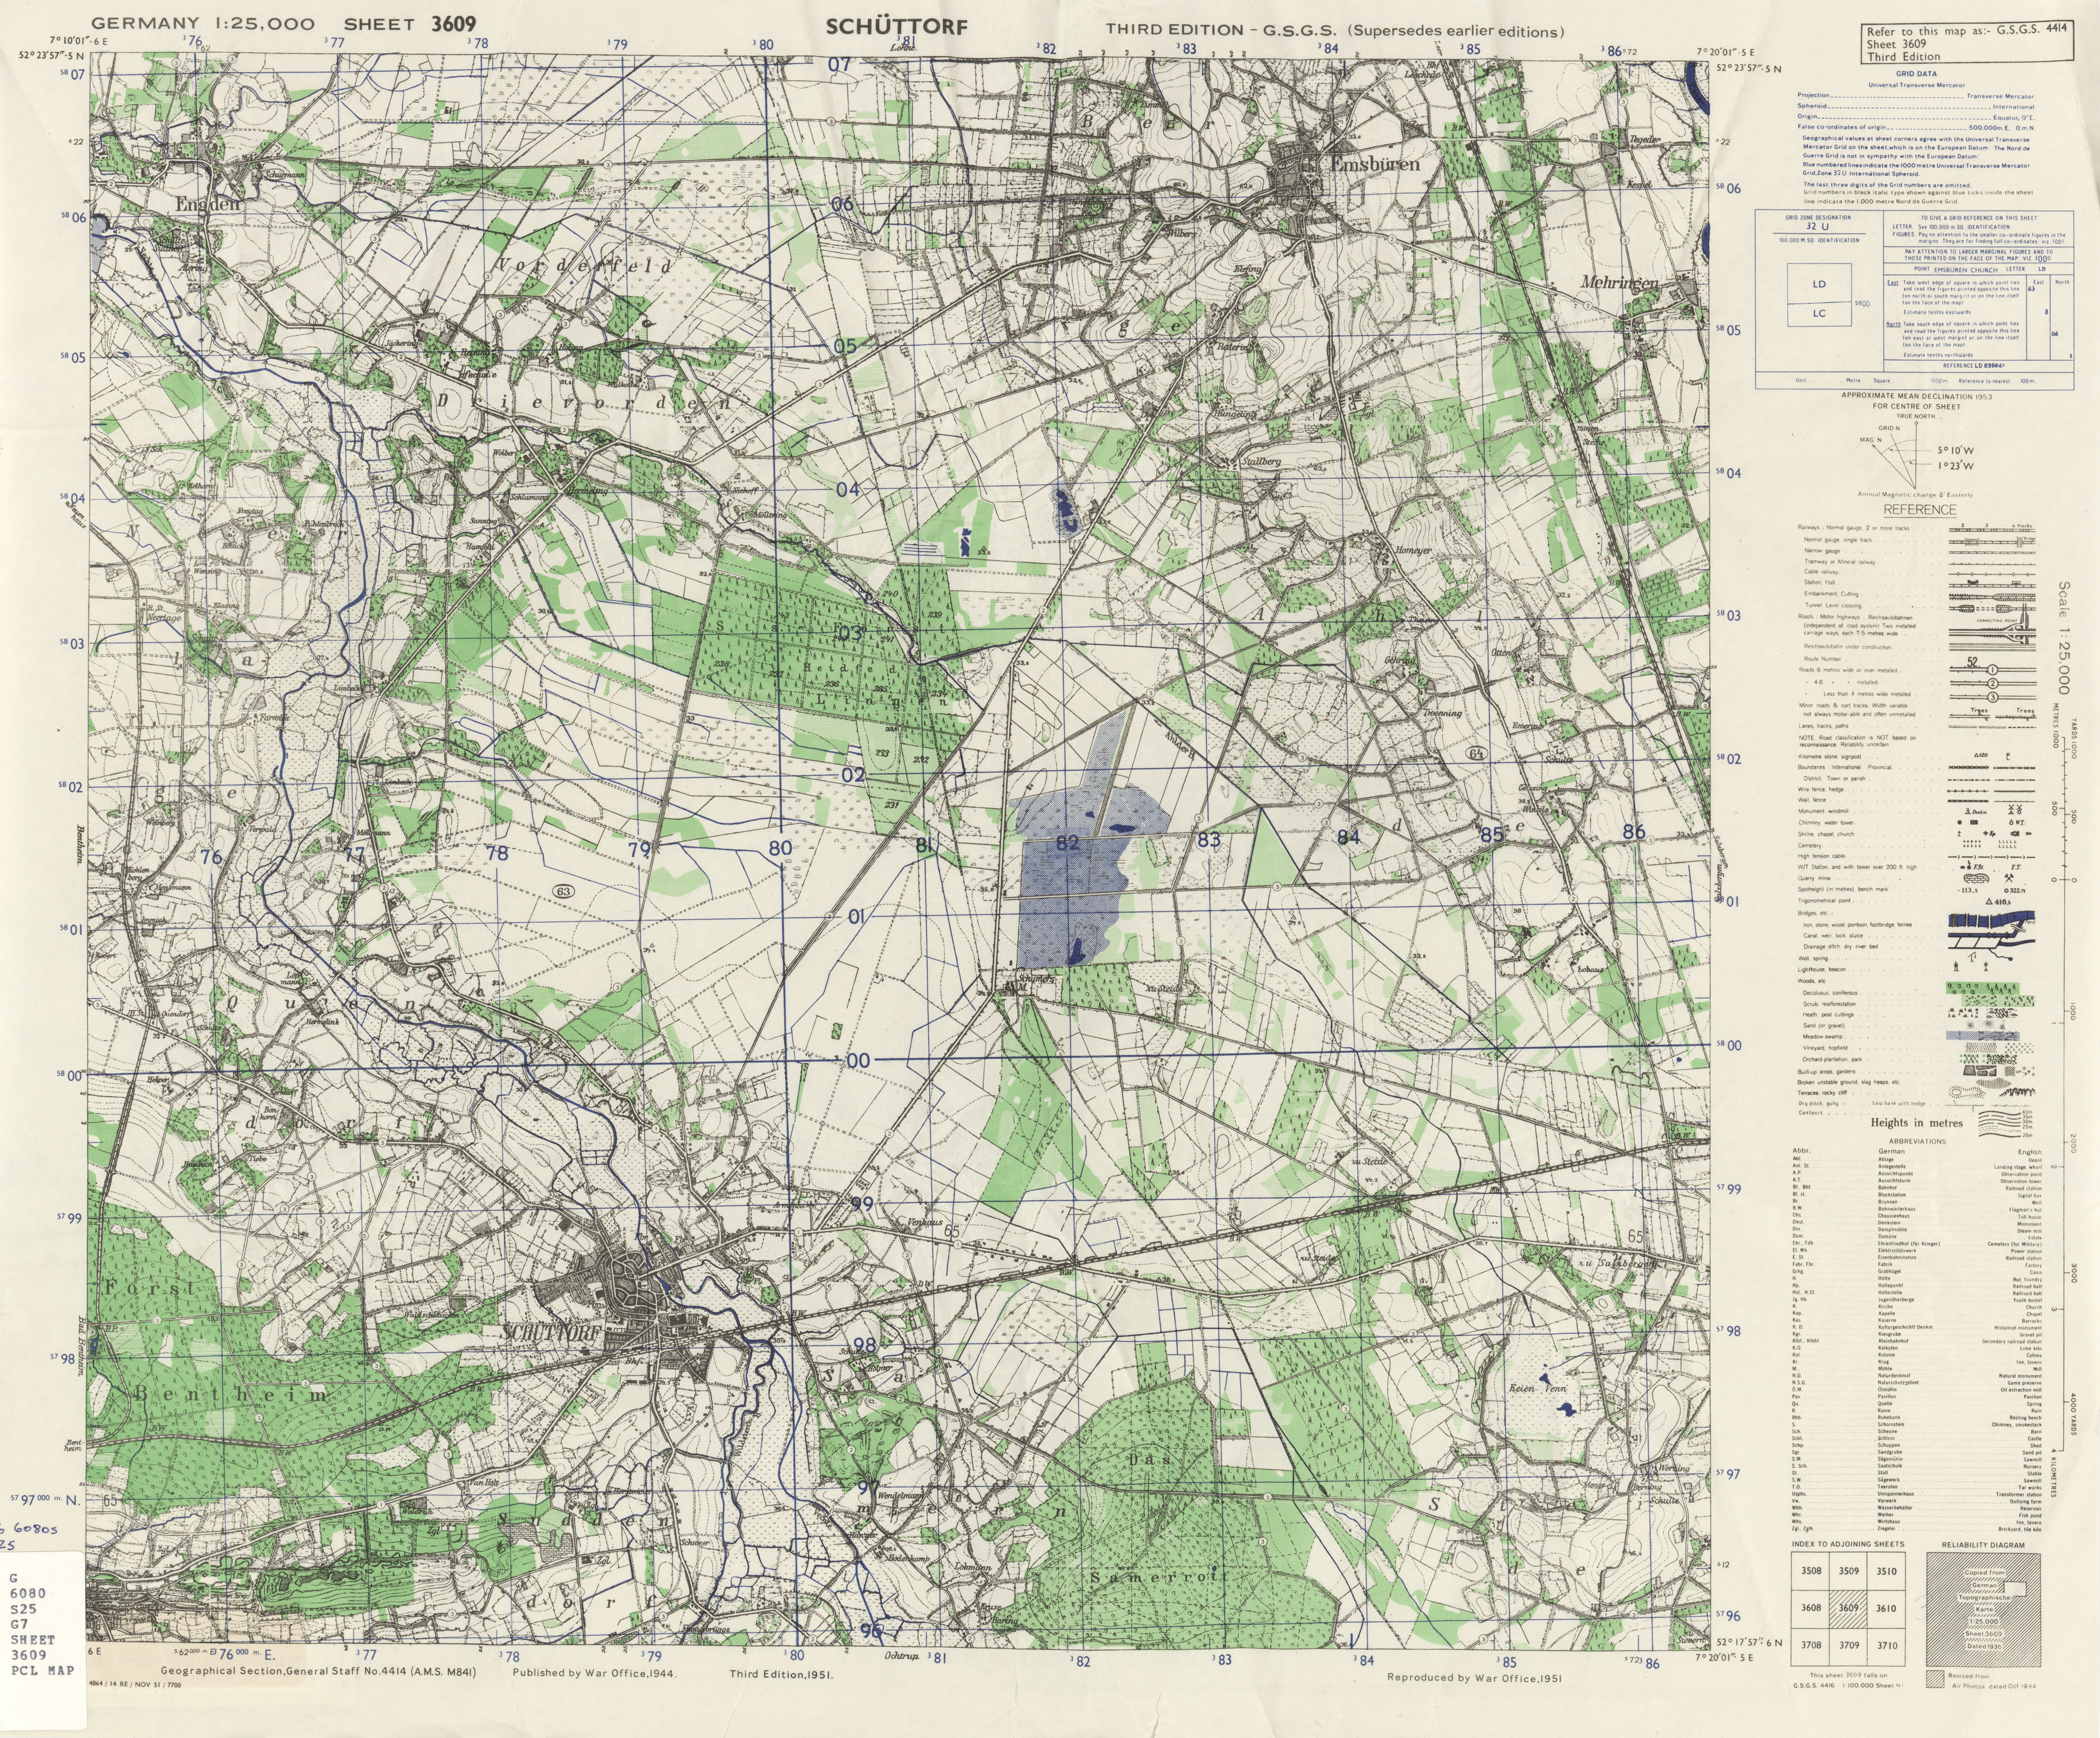 Germany AMS Topographic Maps - Perry-Castañeda Map Collection - UT